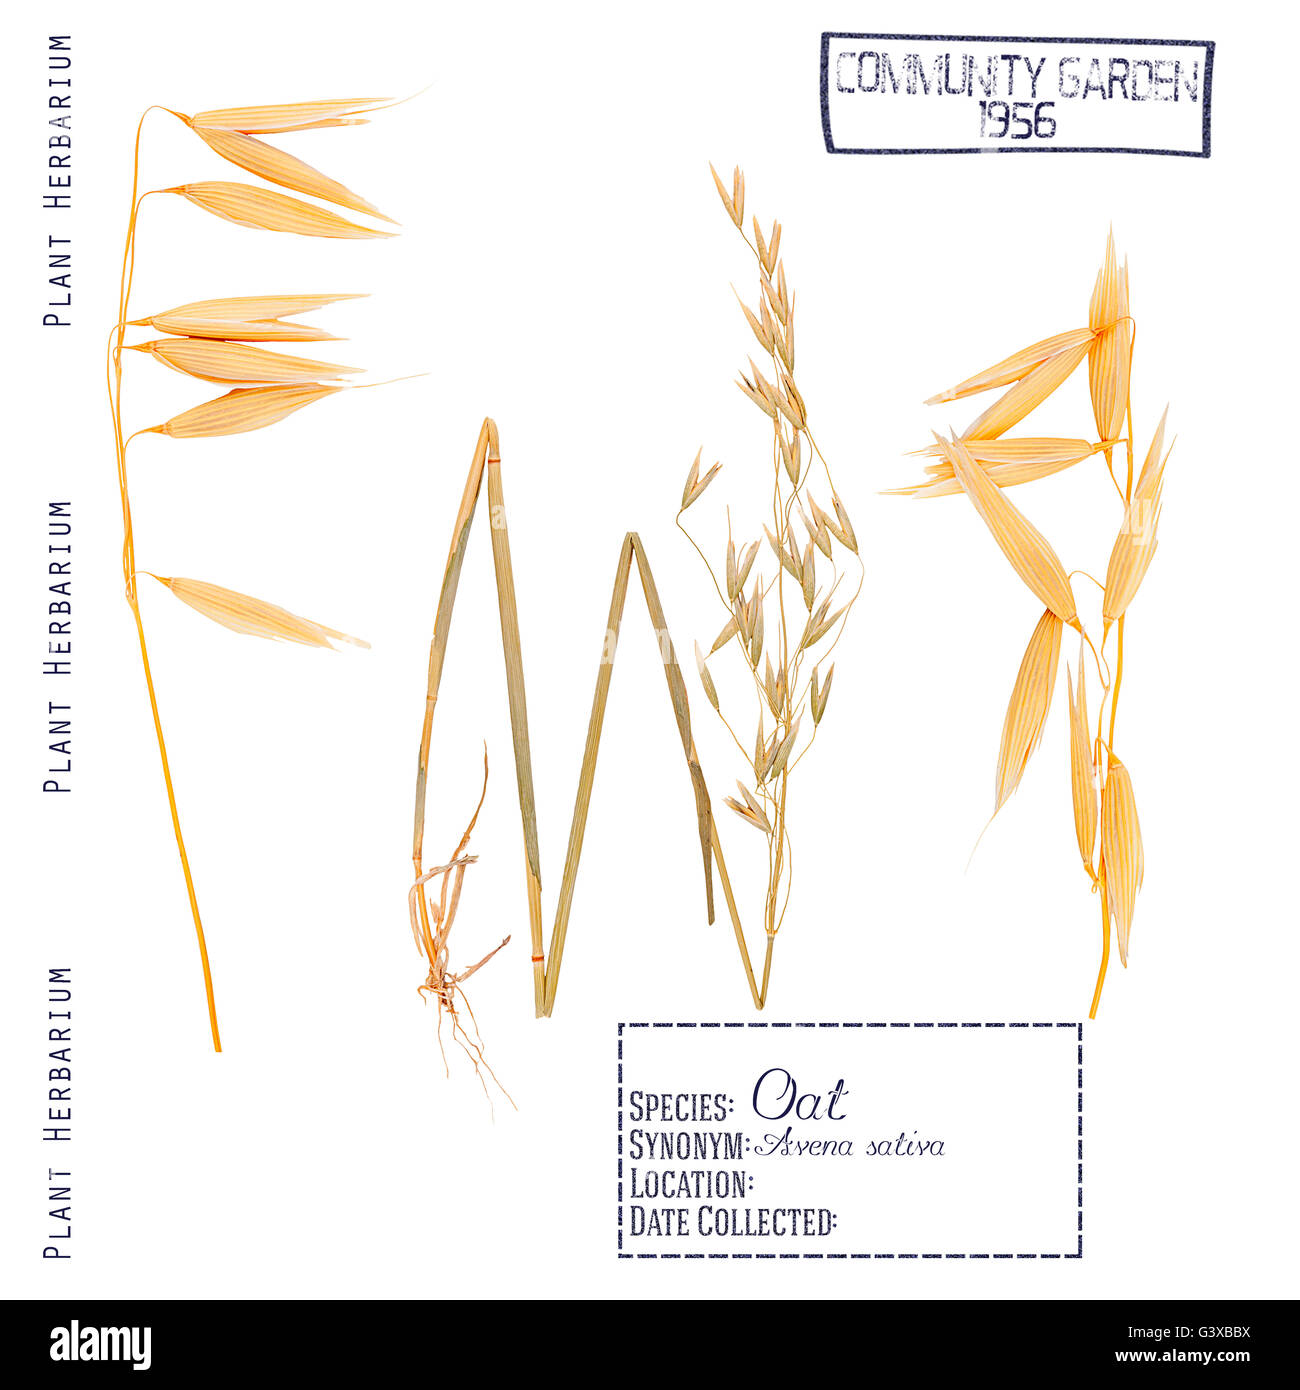 Wheat plant parts diagram auto electrical wiring diagram pressed herbarium plant parts oat leaves stems roots ear and rh alamy com diagram of how wheat is produced diagram of how wheat is produced ccuart Image collections